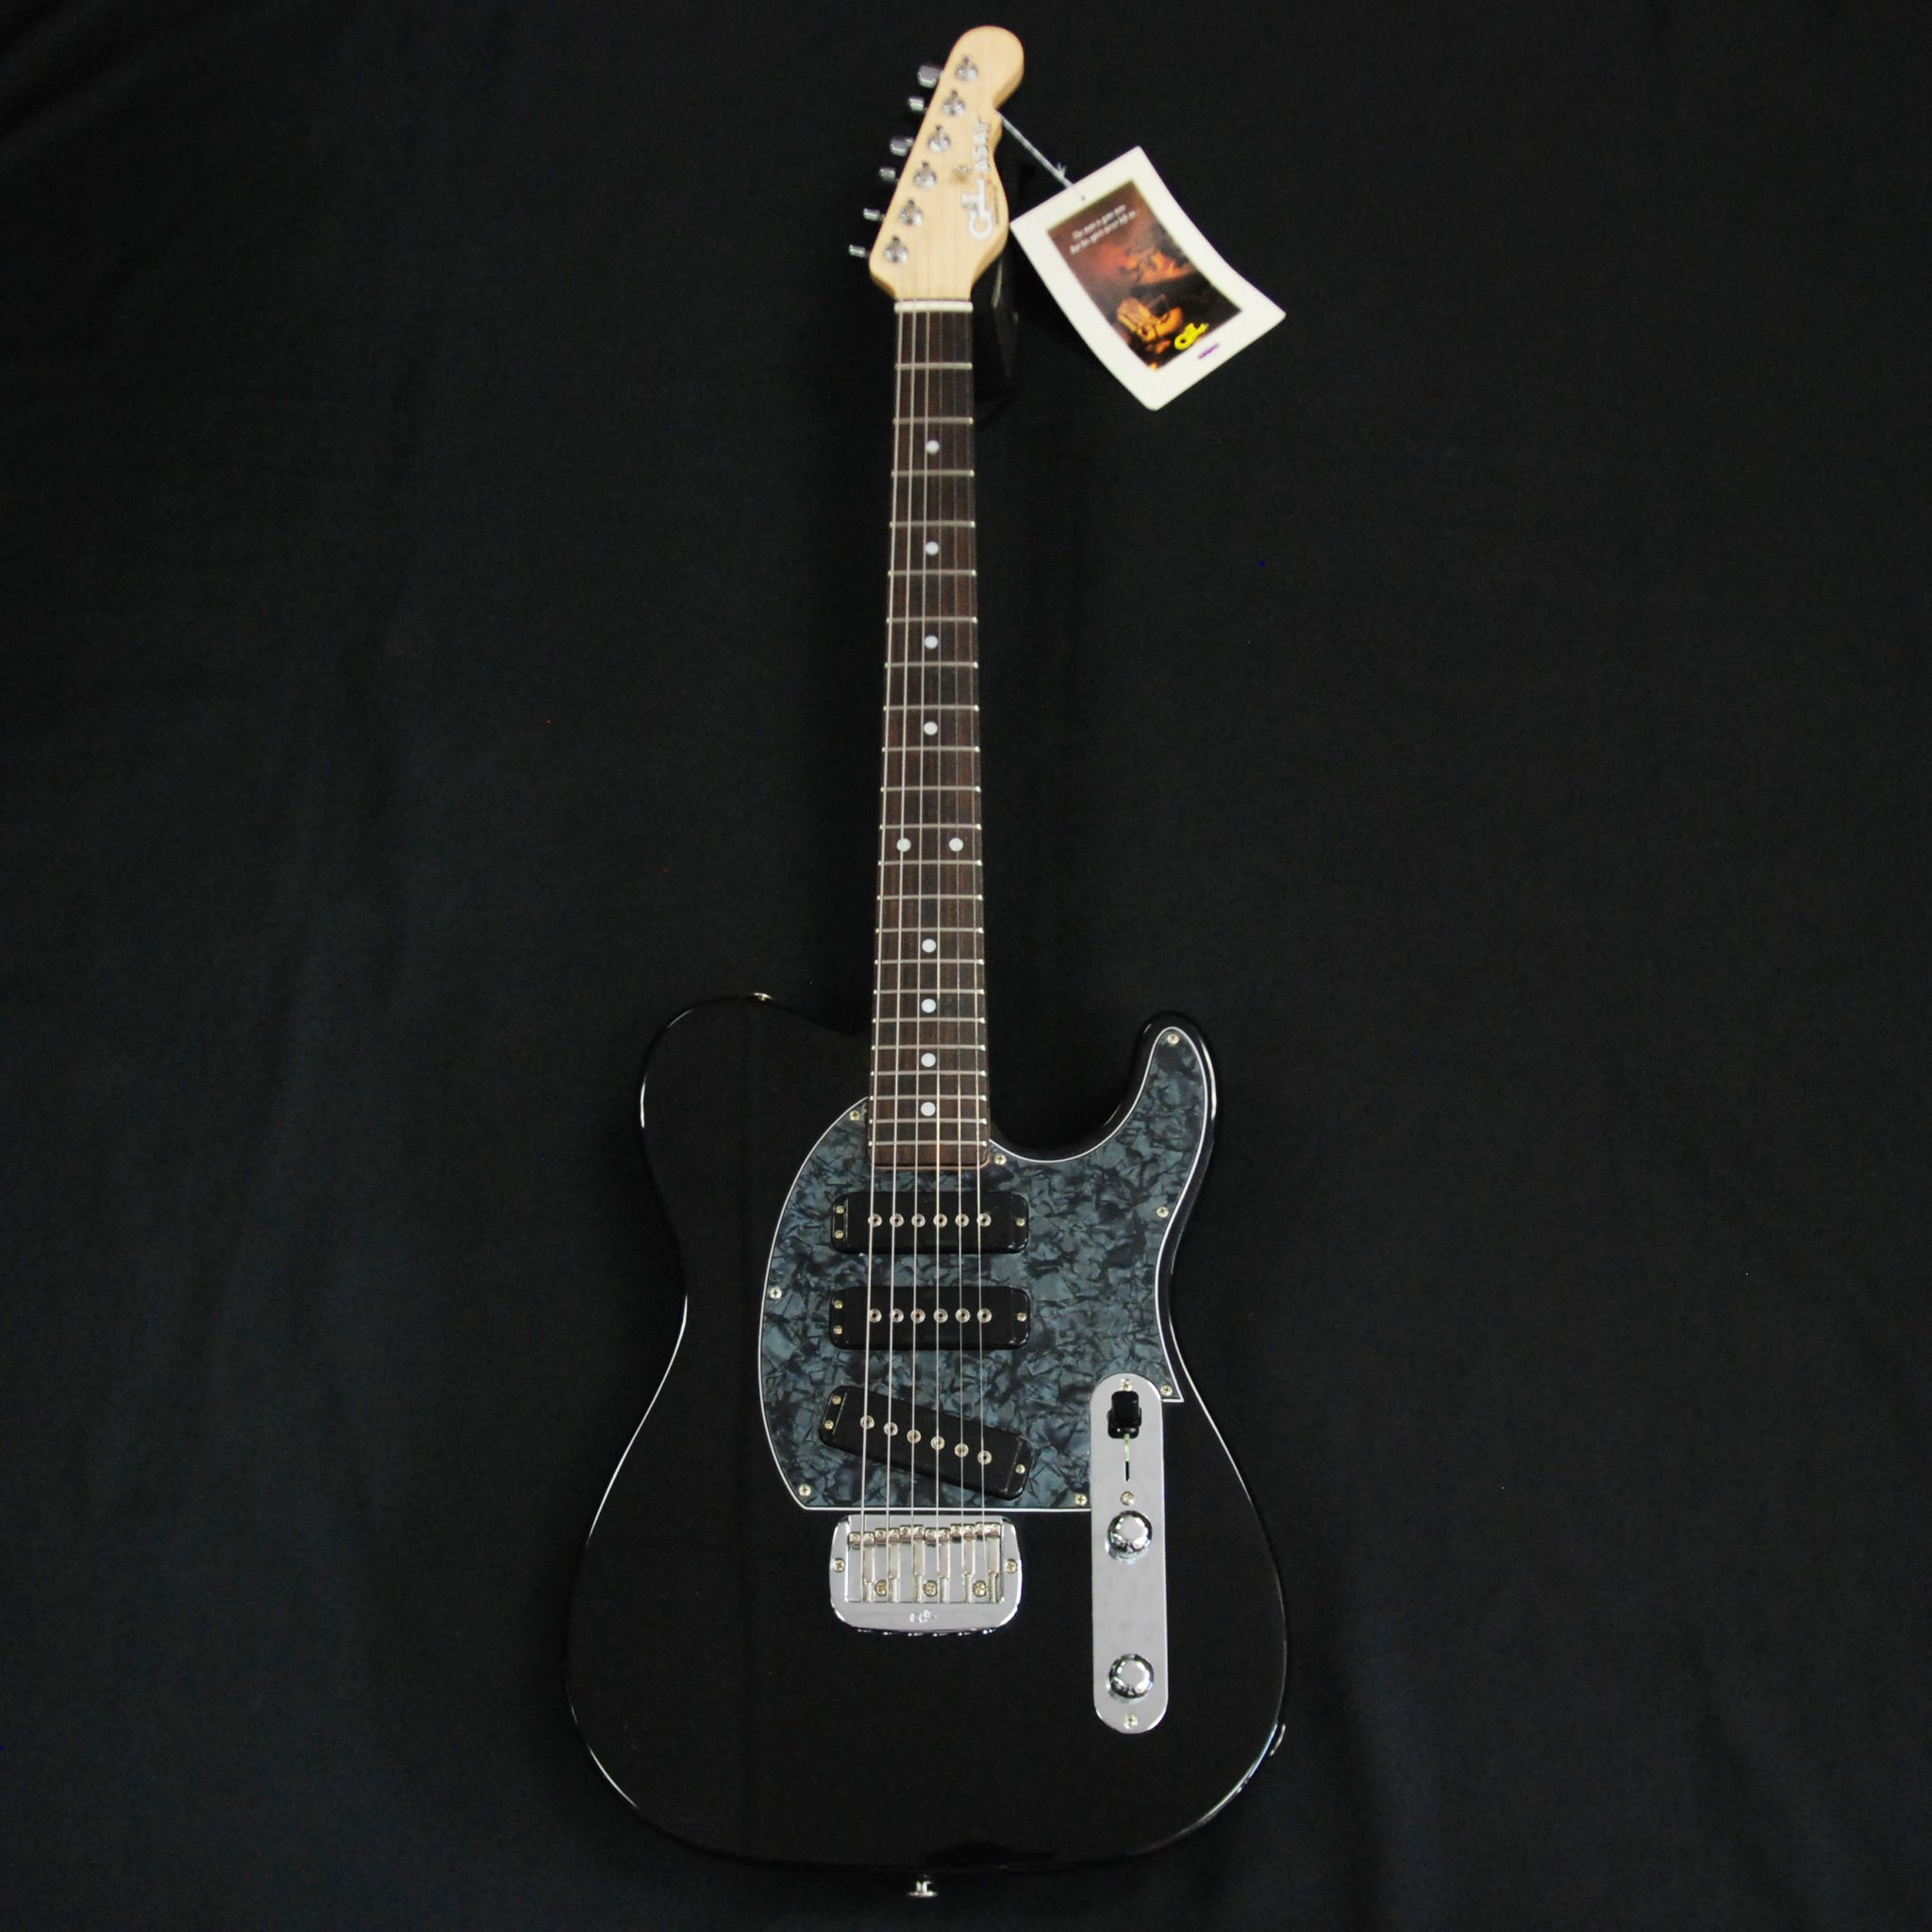 Shop online for G&L ASAT Special 3 Limited Edition USA Electric Guitar Black 069814 today. Now available for purchase from Midlothian Music of Orland Park, Illinois, USA